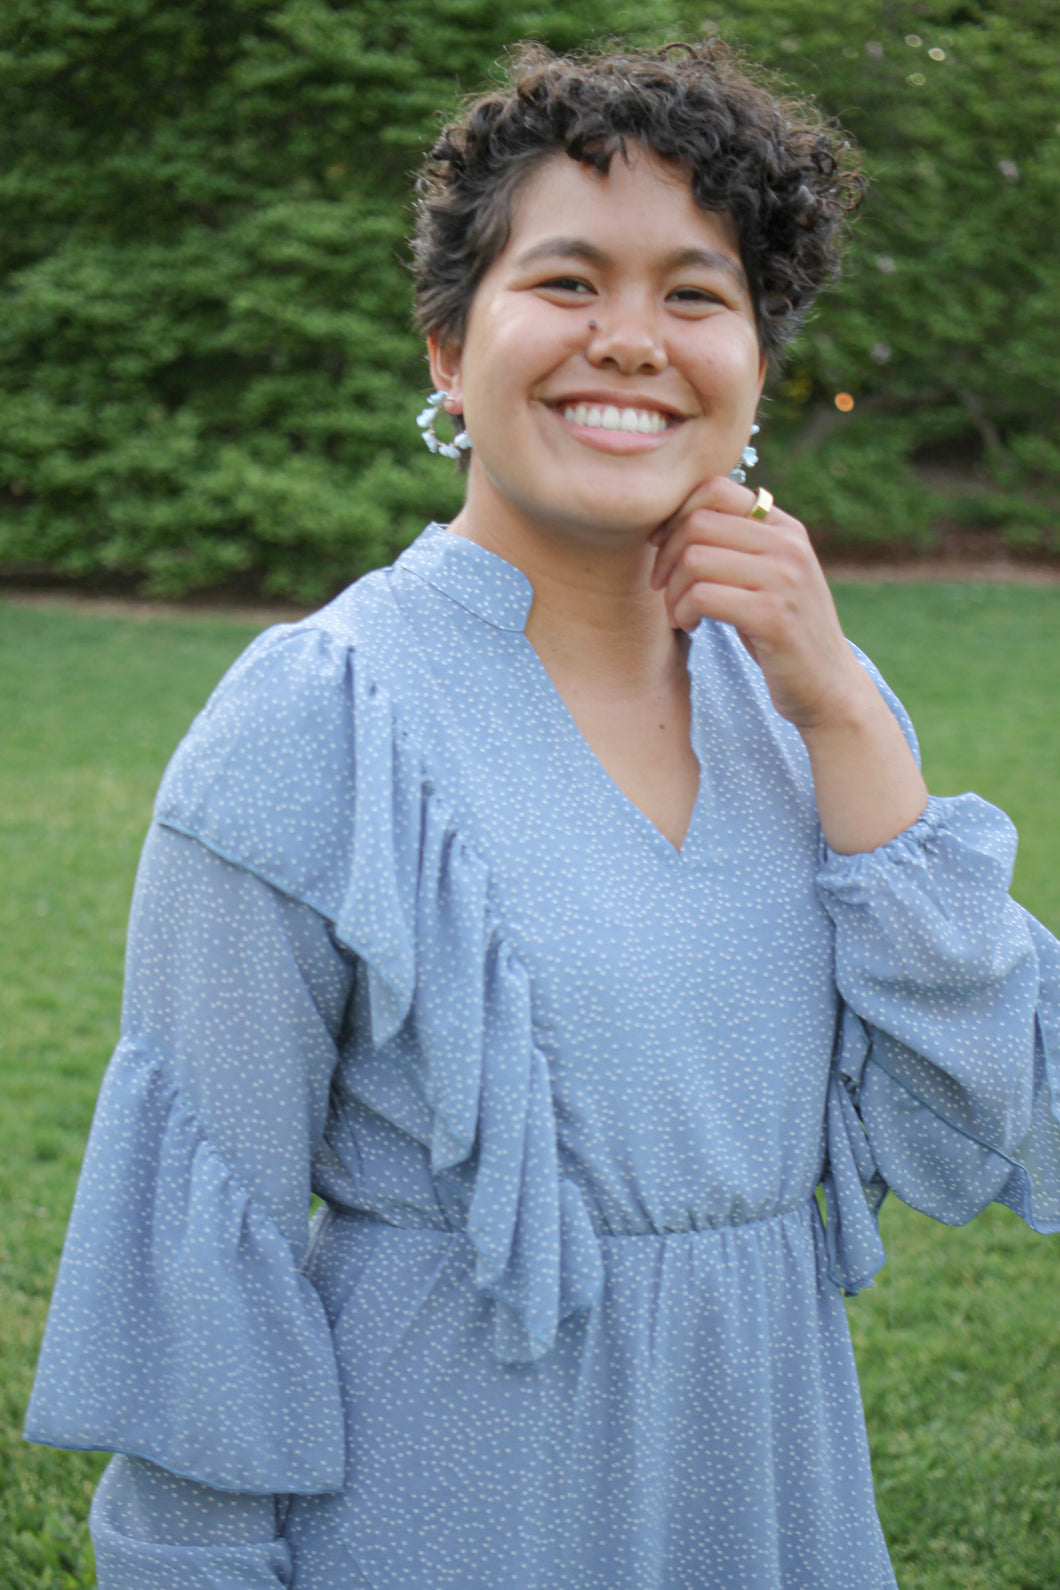 Butterfly Hair Clips in Gold